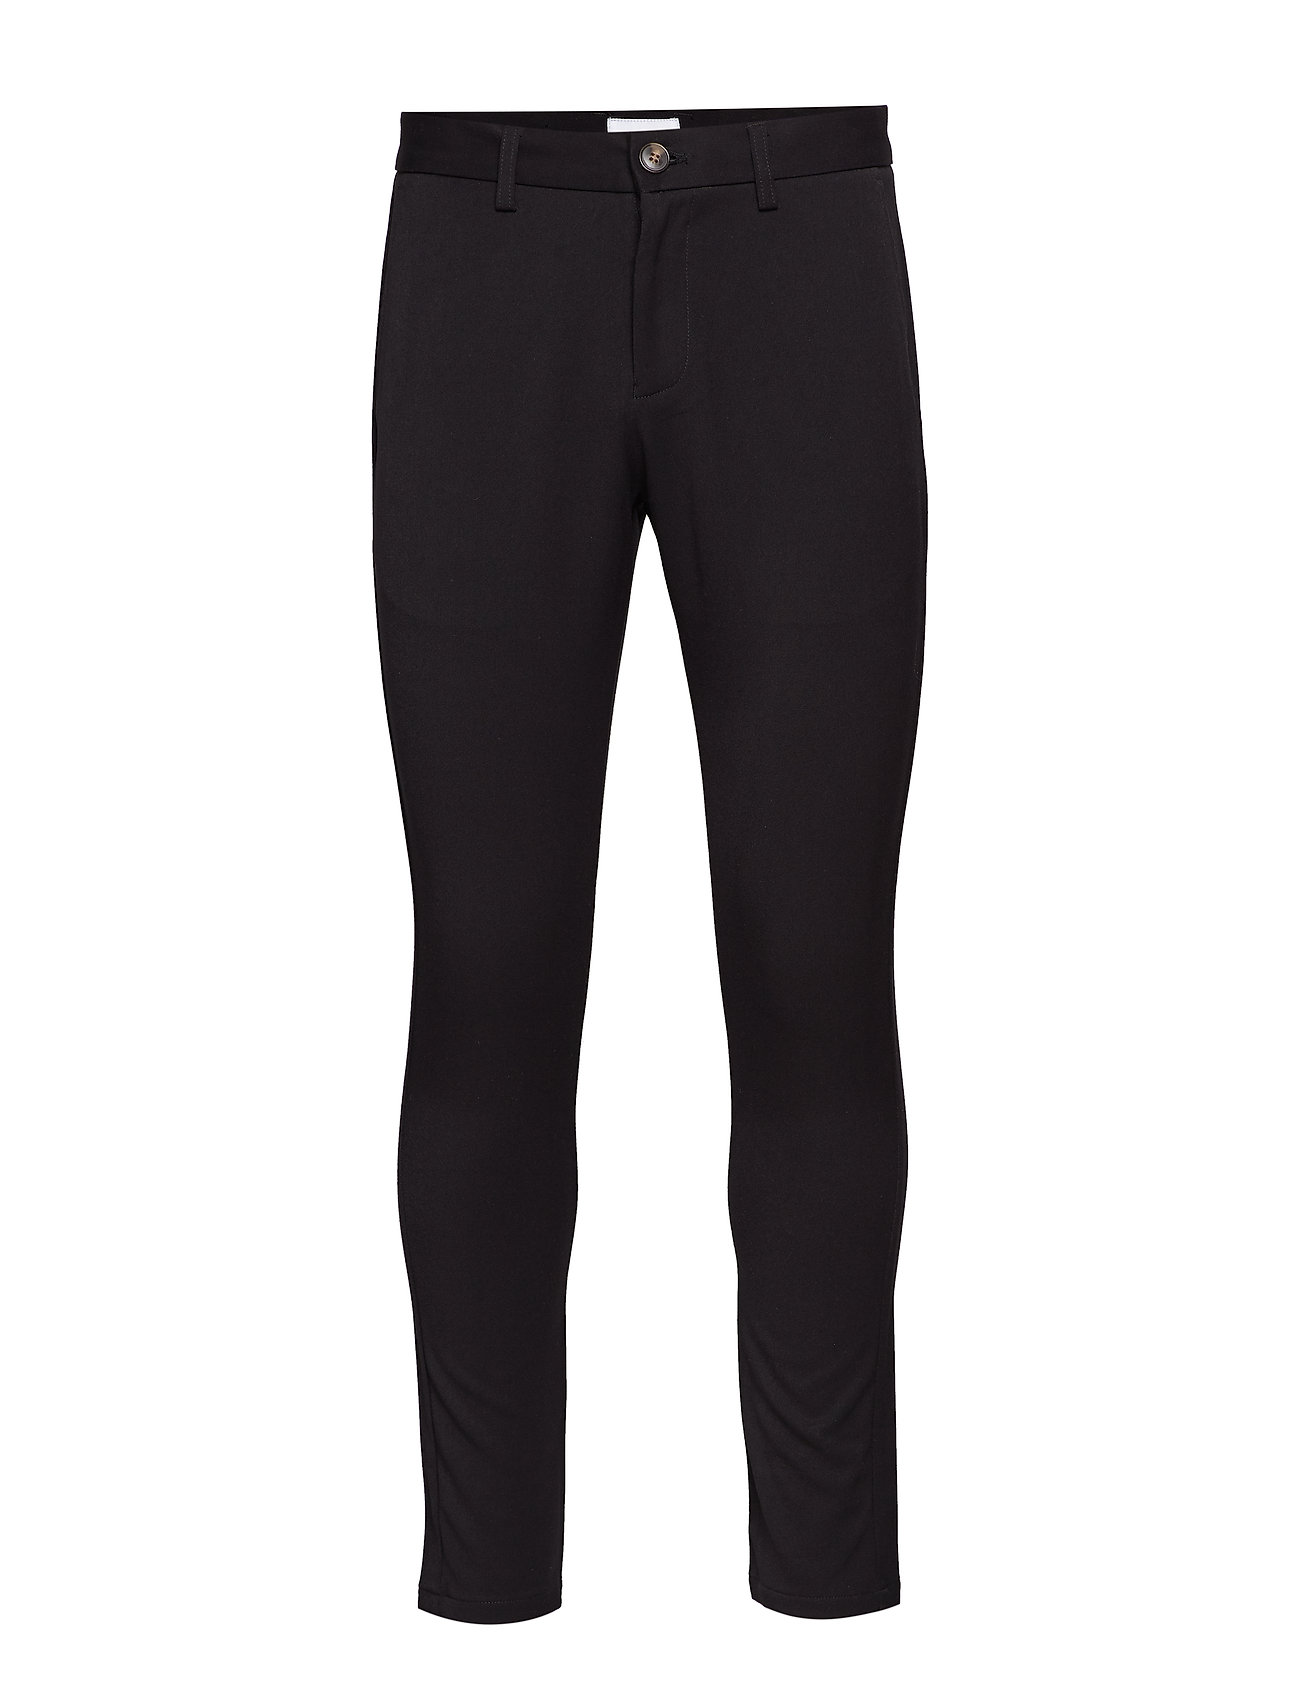 Lindbergh Casual stretch pant - BLACK